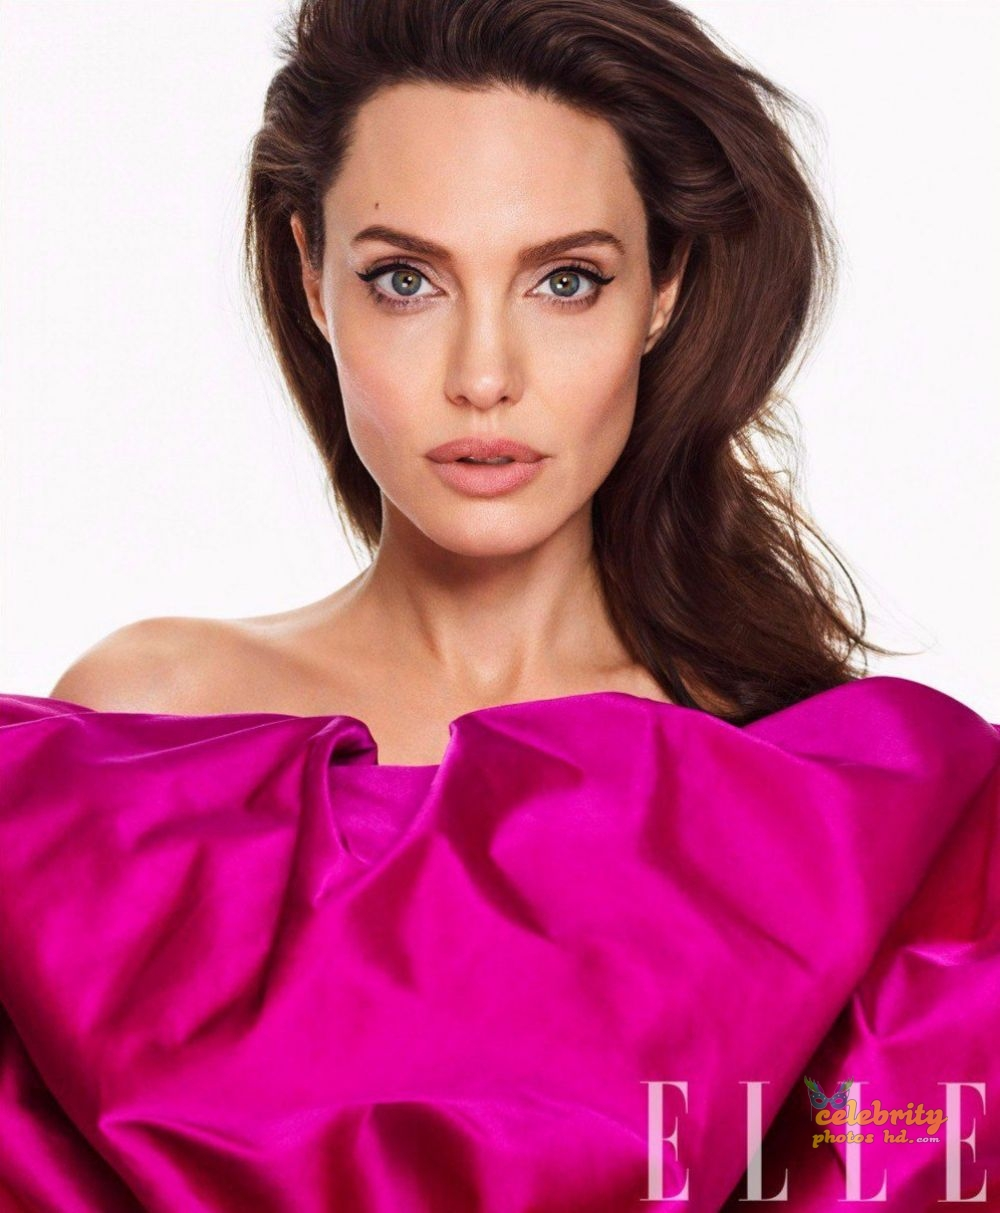 ANGELINA JOLIE in Elle Magazine Photo (1)